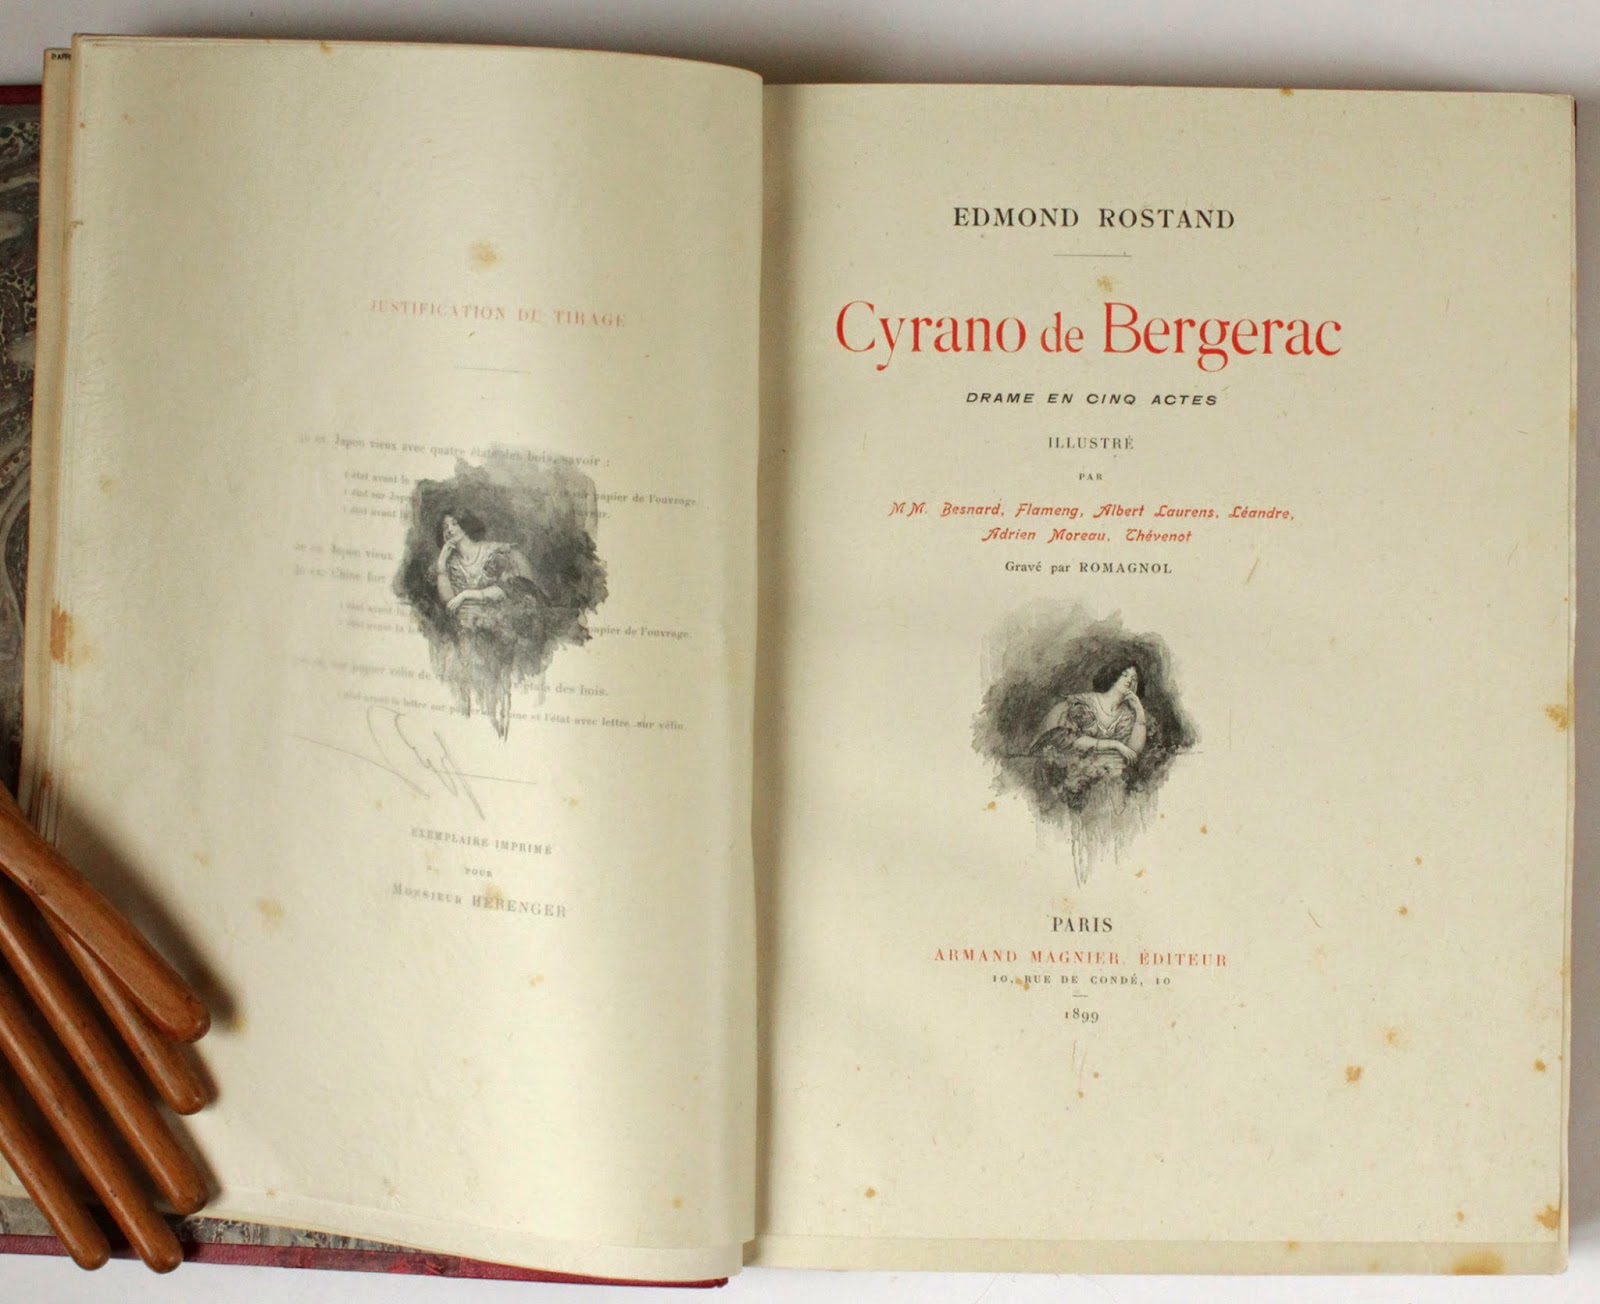 an essay on cyrano de bergerac by edmond rostand In the play cyrano de bergerac by edmond rostand, the antagonist cyrano is an eloquent, charming, and abrasive man whose extremely large.